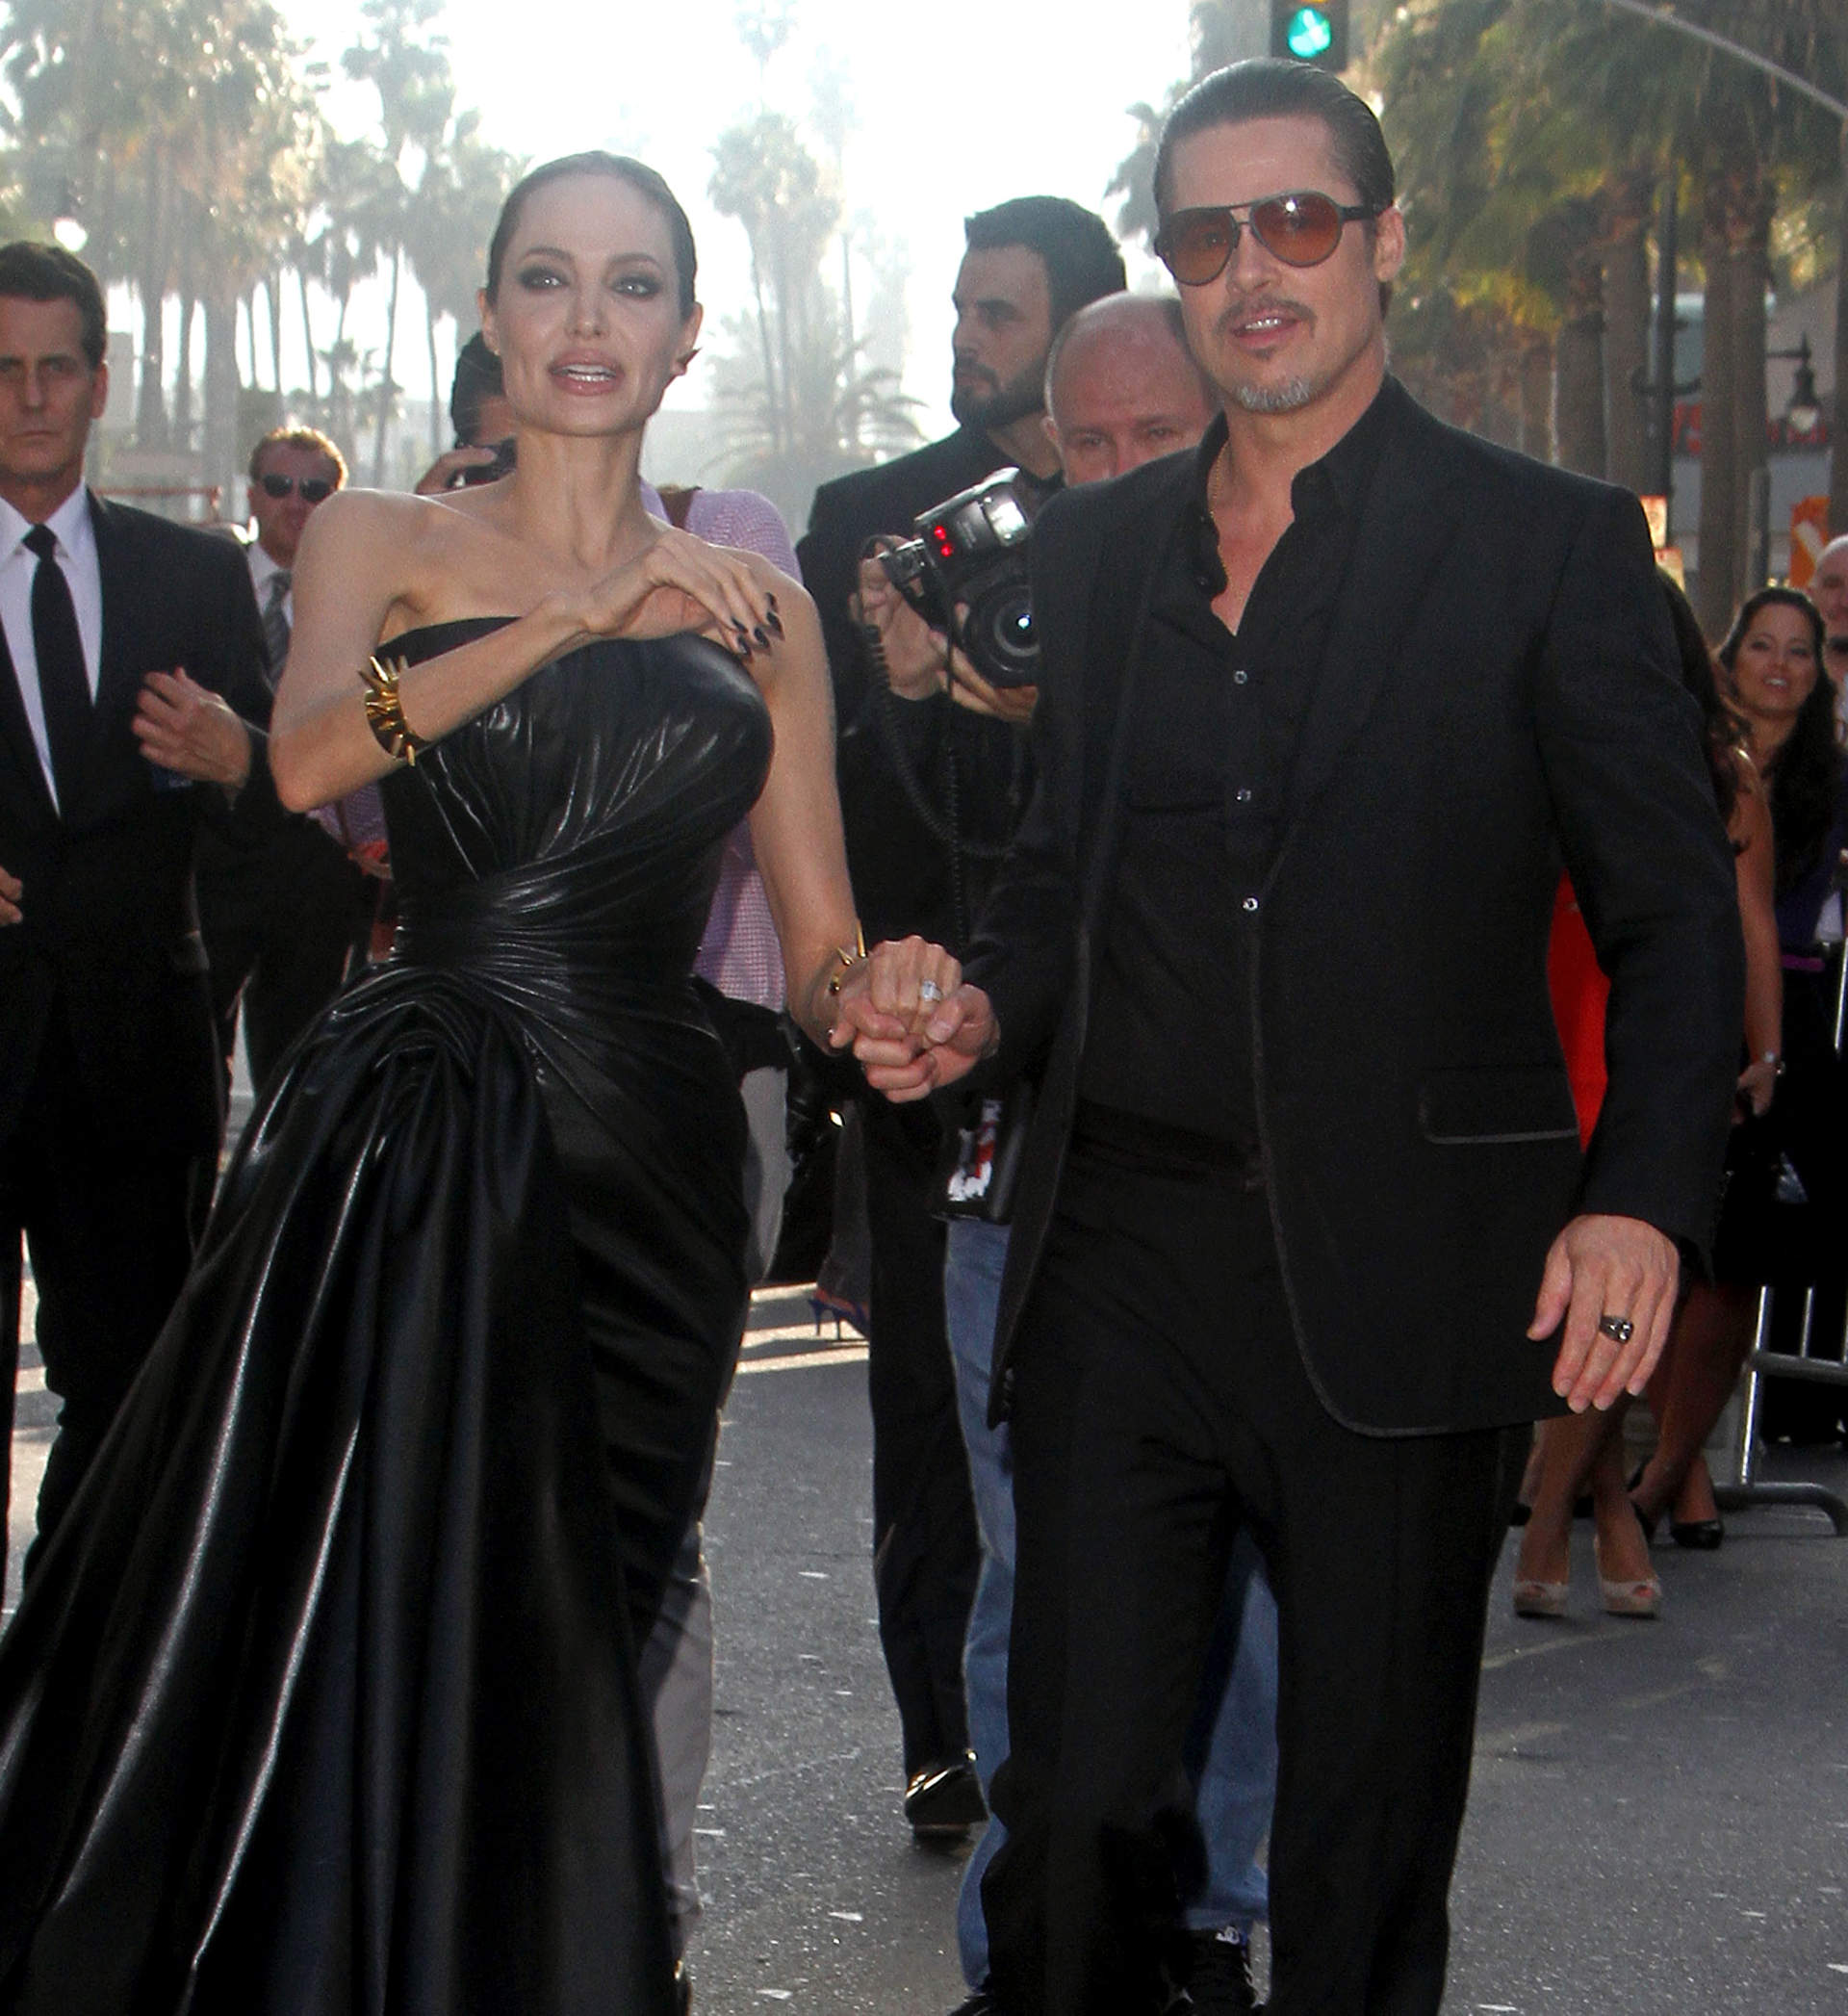 angelina jolie and brad pitt at maleficent world premiere